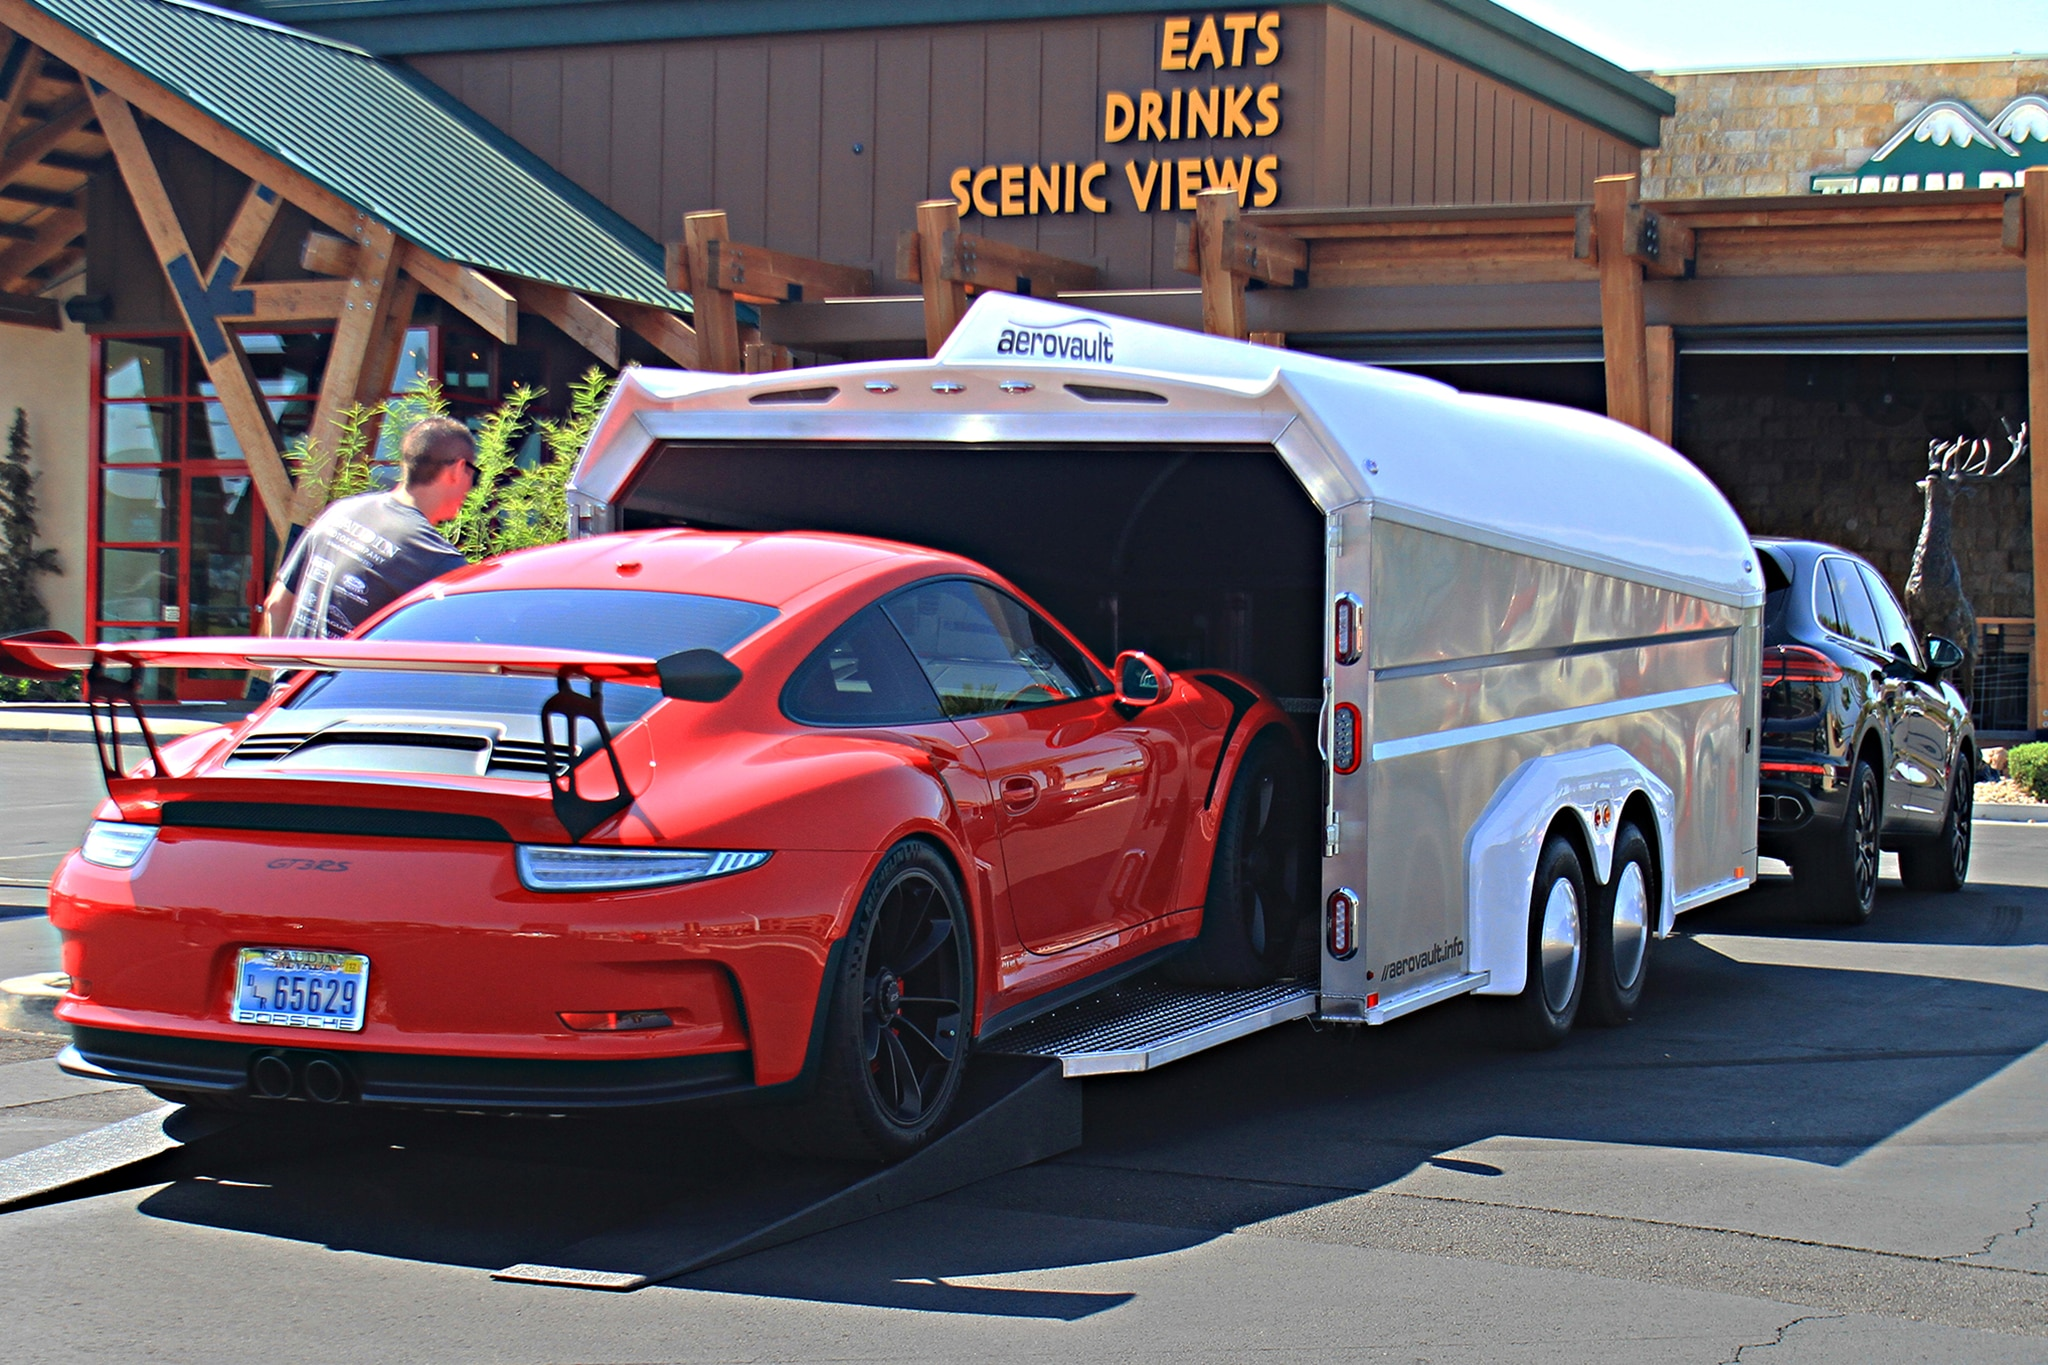 GT3RS Being Winched Into Aerovault With Remote Control